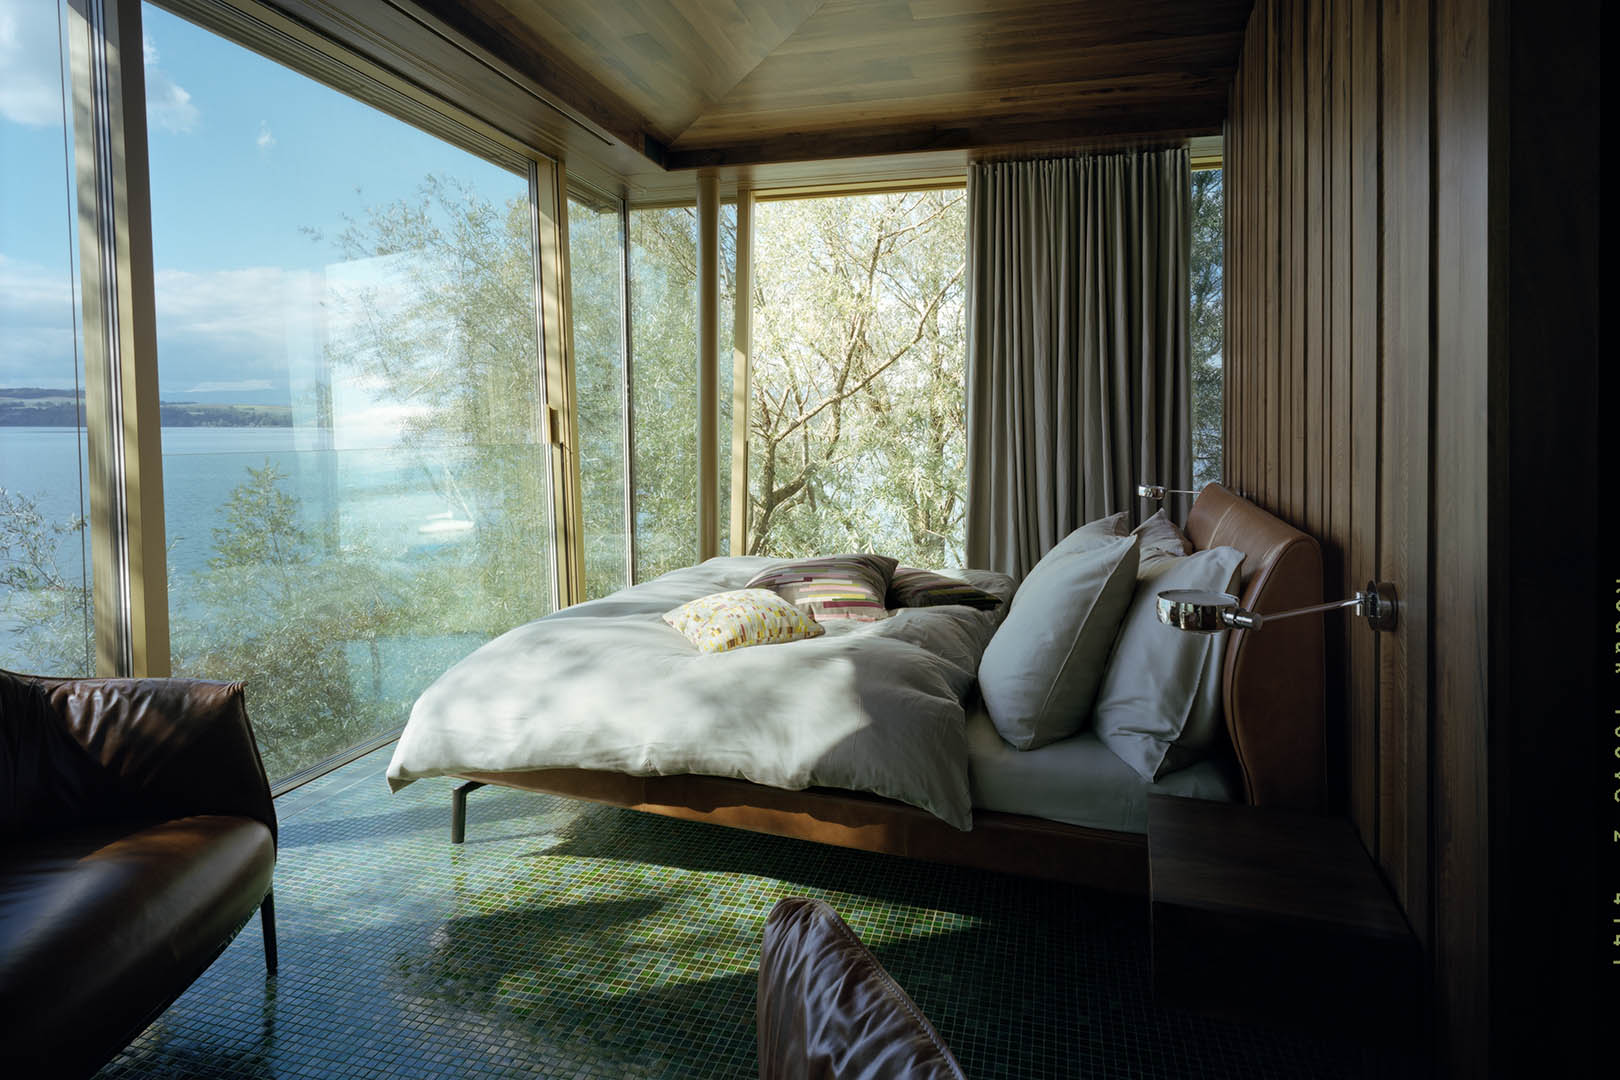 Interieur Passion Home Textiles grego | architecture and interior design with a personal touch